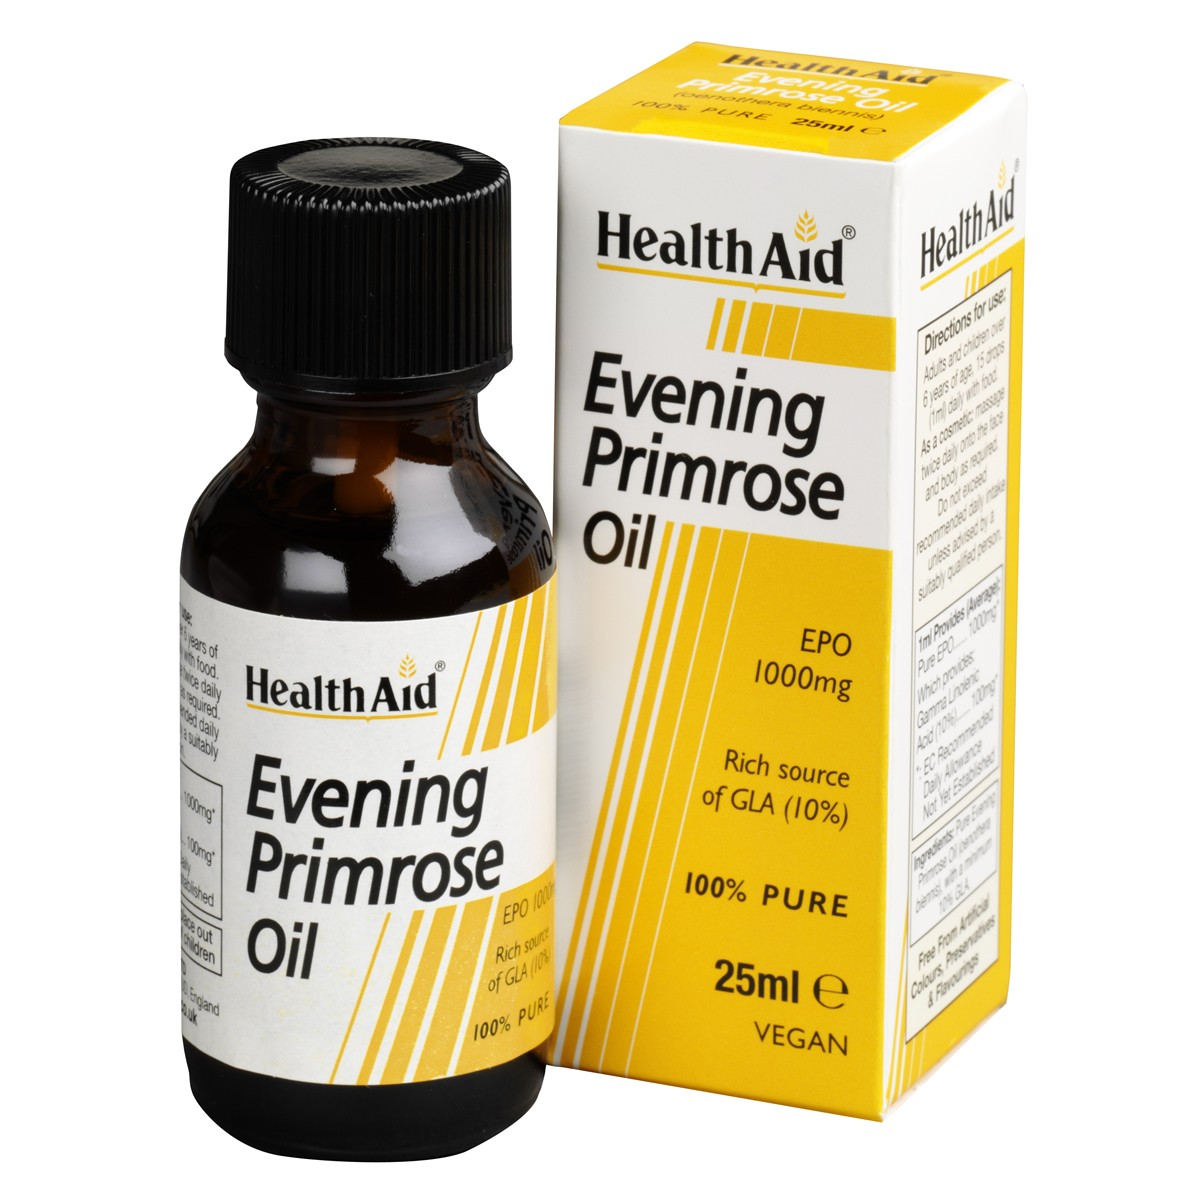 HealthAid Evening Primrose Oil - Pure EPO Oil (10% GLA) 25ml